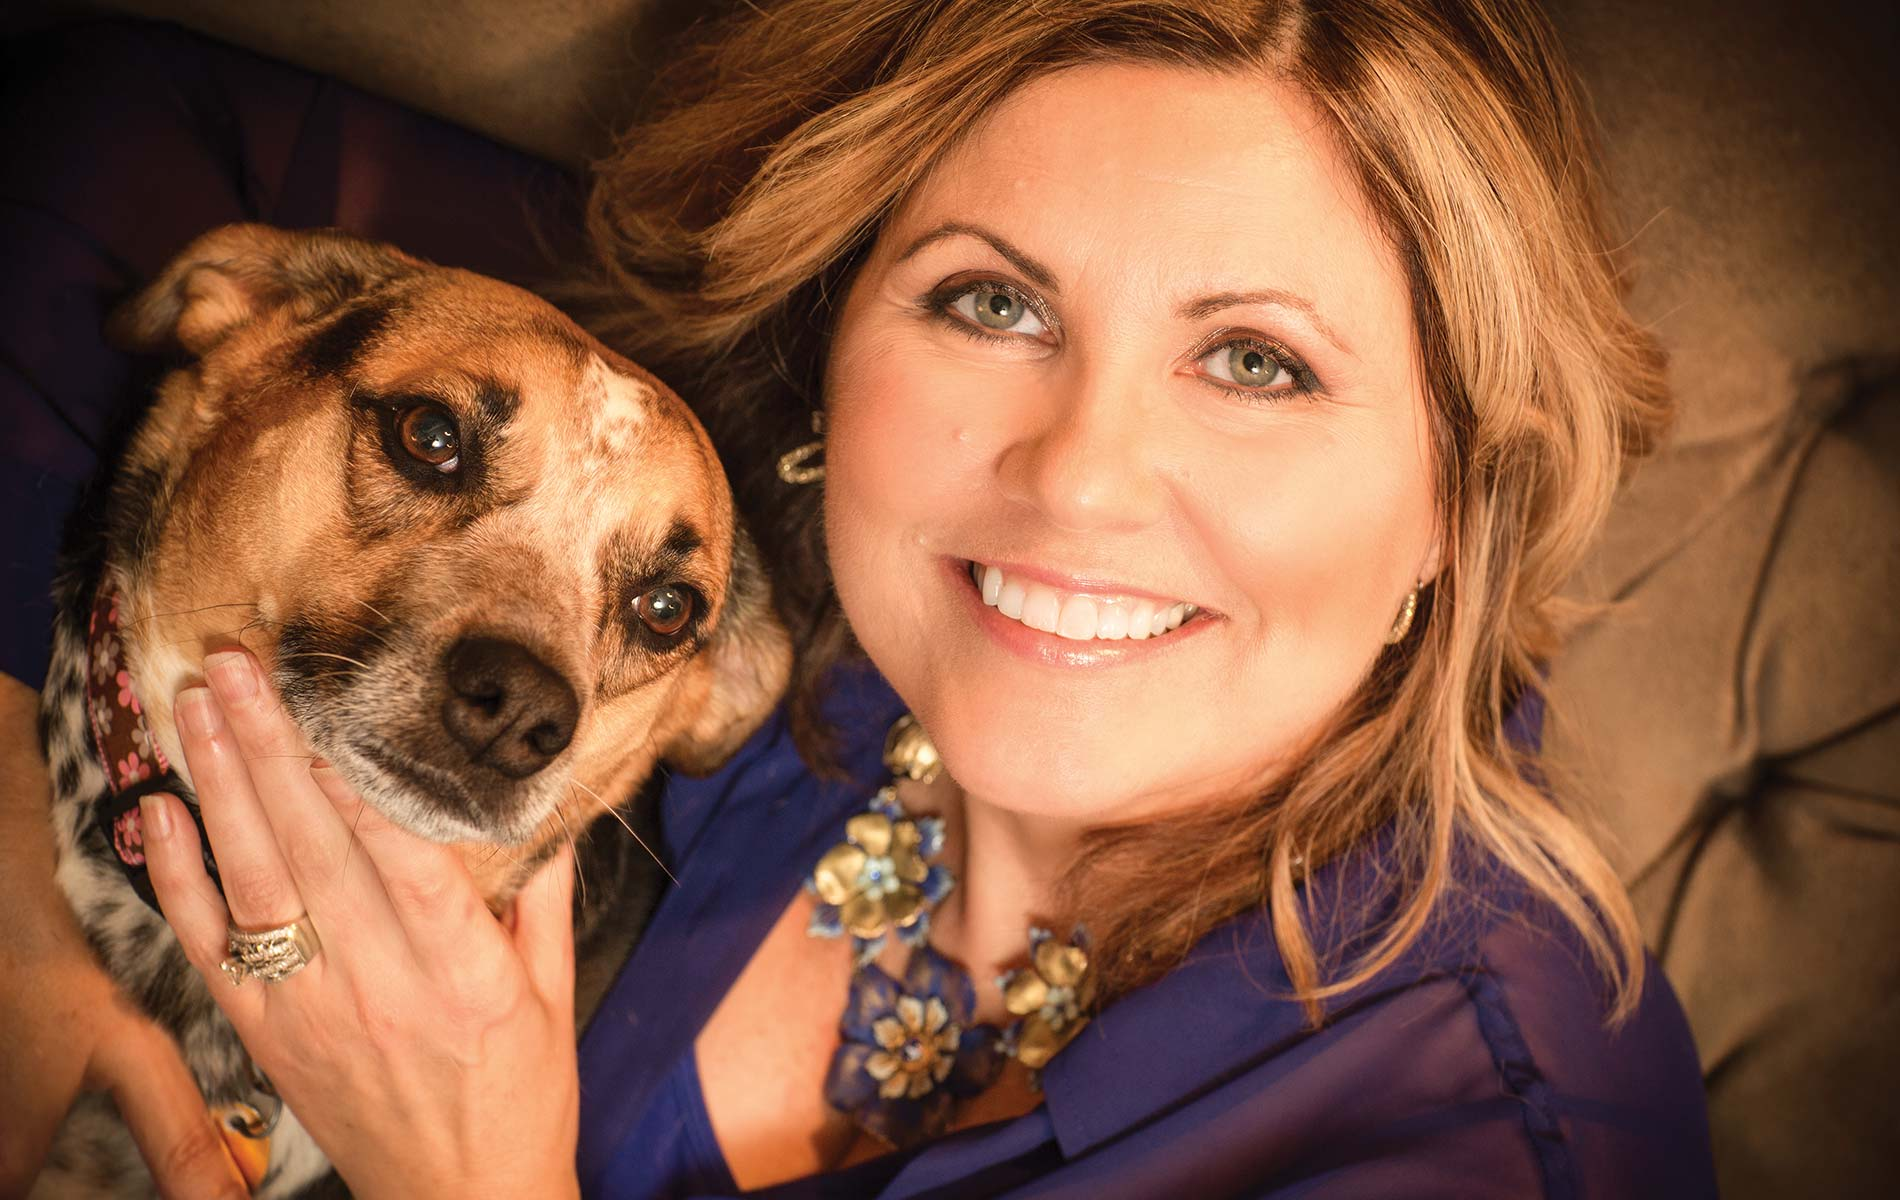 vie-magazine-lady-and-dog-feature